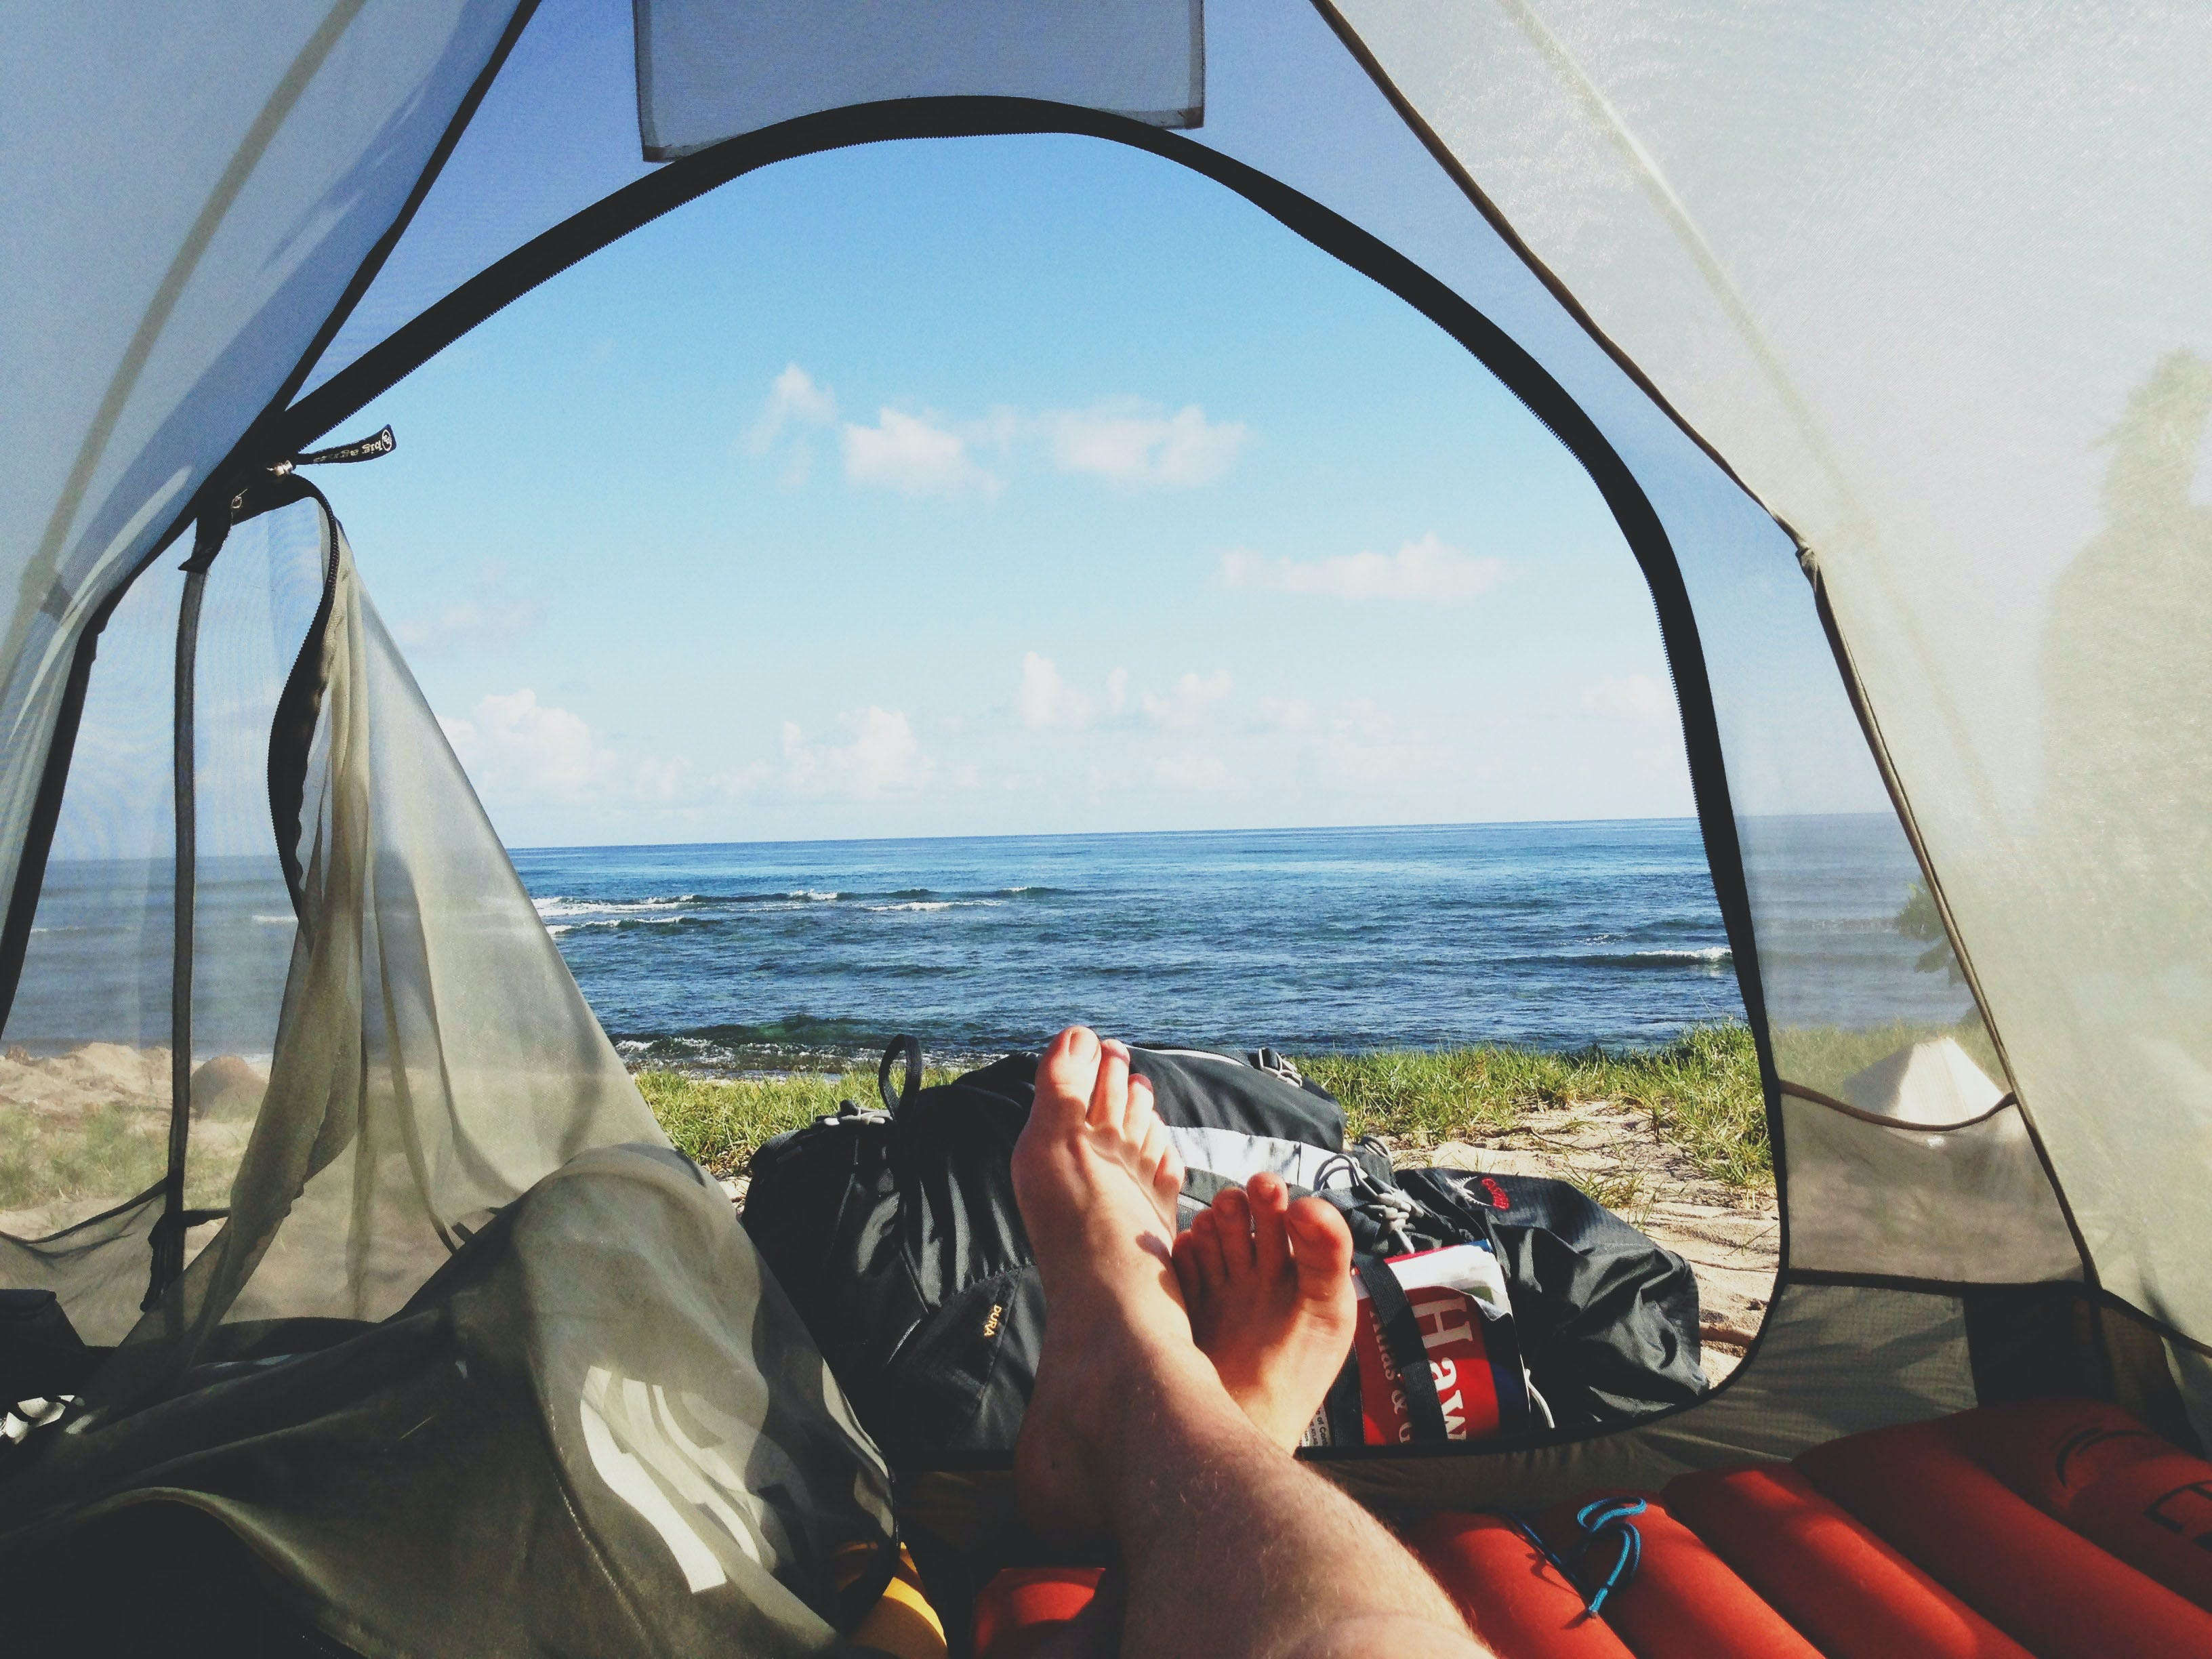 Research carefully before deciding the place to pitch your tent